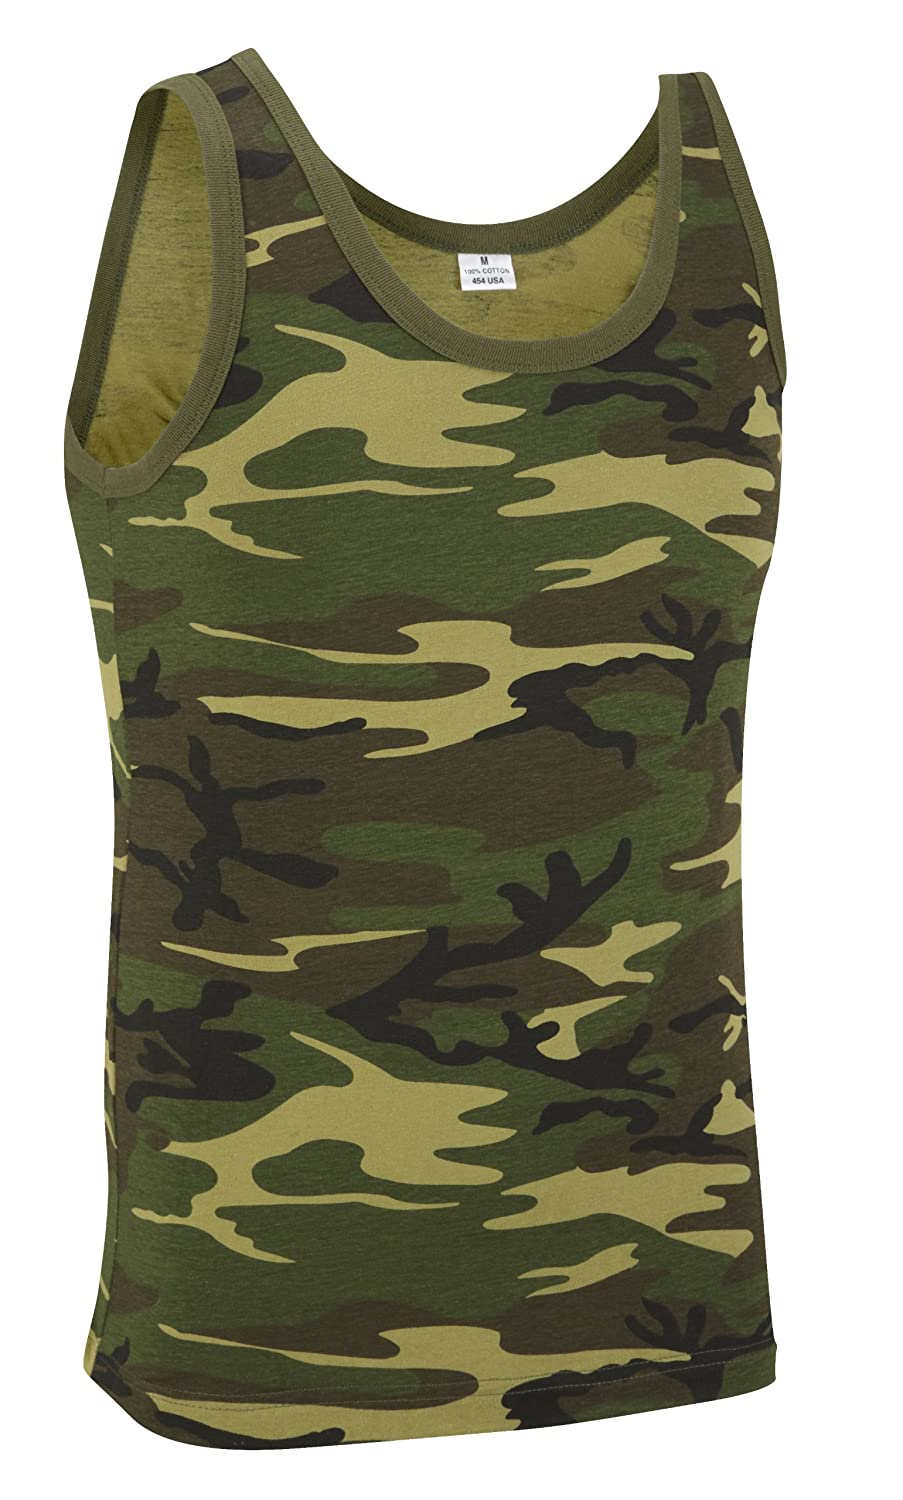 1ee61b8591df8 Camouflage Military Vest Top - Woodland Camouflage  Amazon.co.uk  Clothing